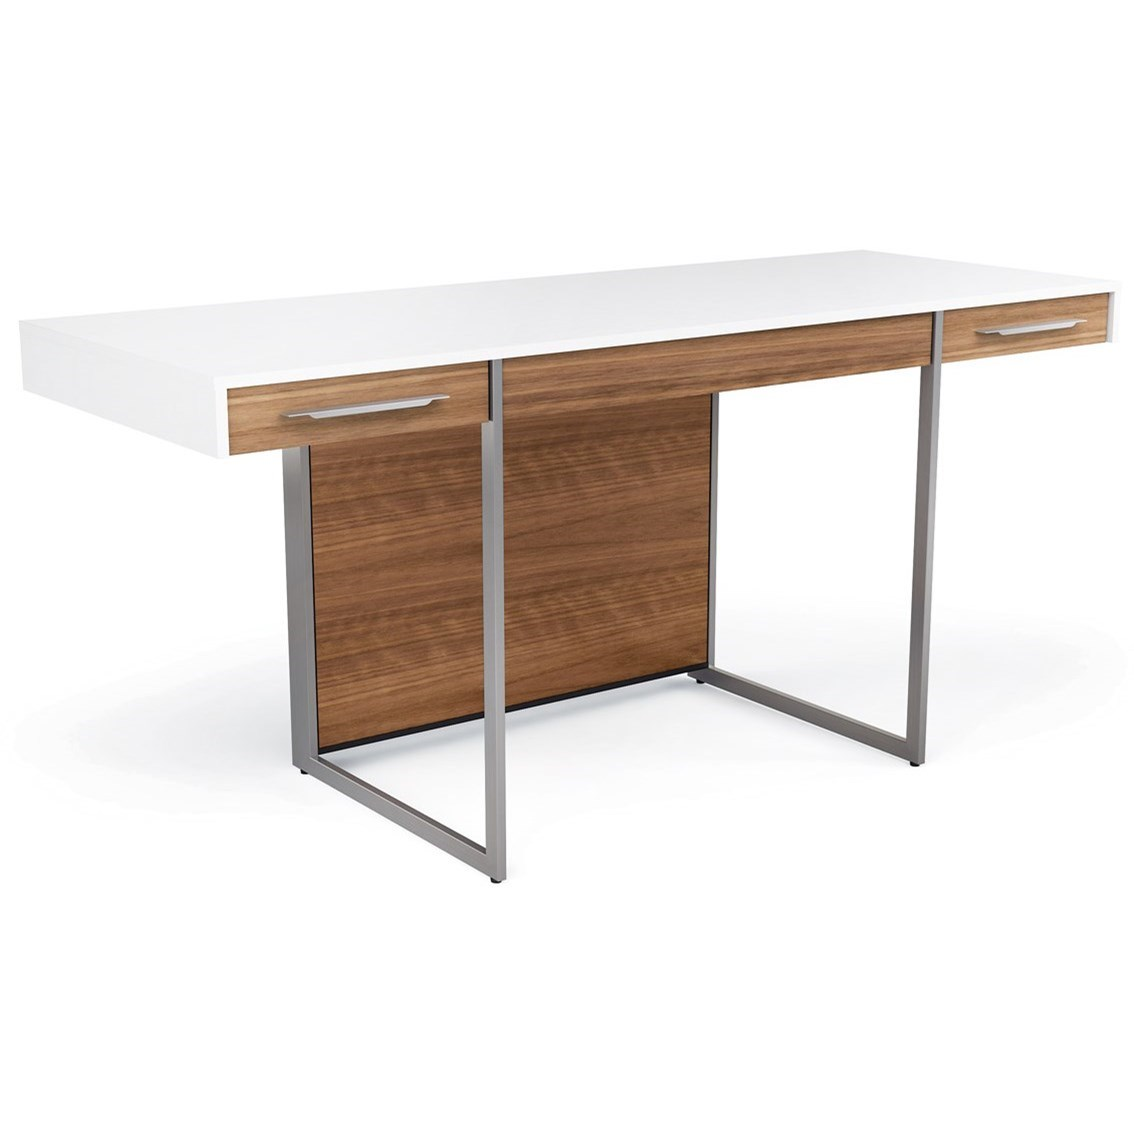 Format Desk by BDI at Upper Room Home Furnishings